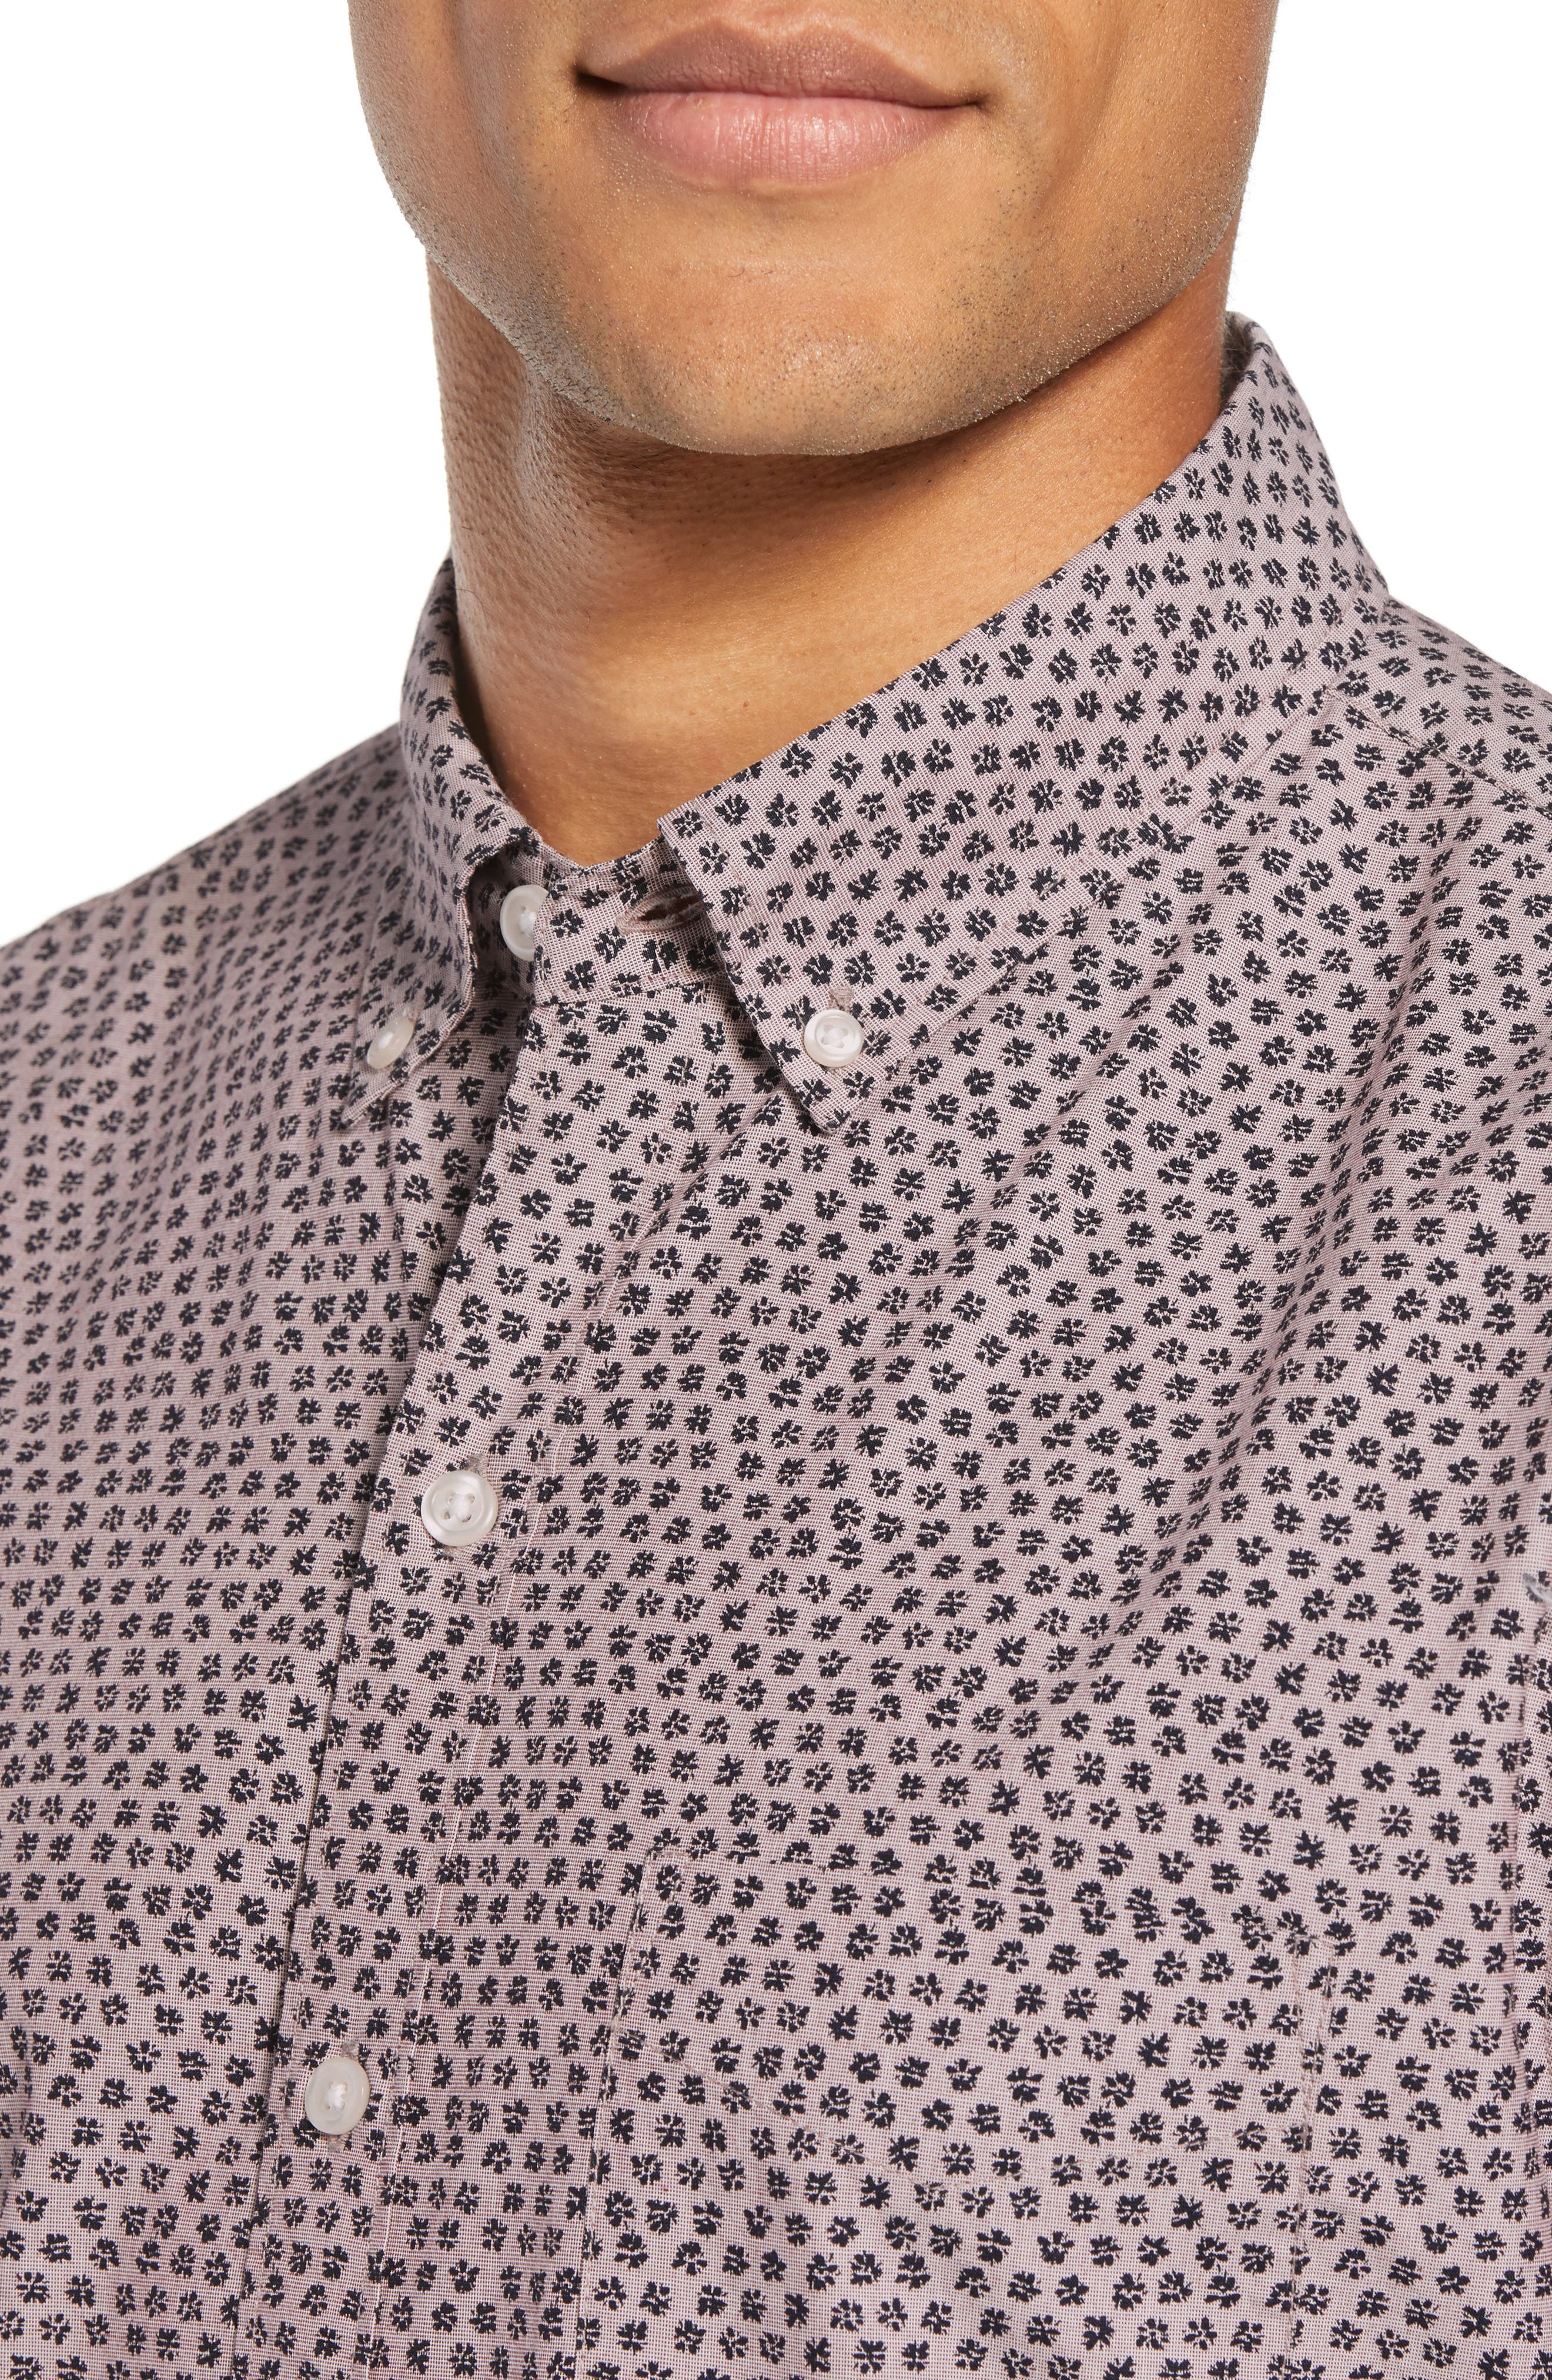 BONOBOS, Washed Button Down Slim Fit Print Sport Shirt, Alternate thumbnail 4, color, HIGHLAND FLORAL - BEAR BERRY